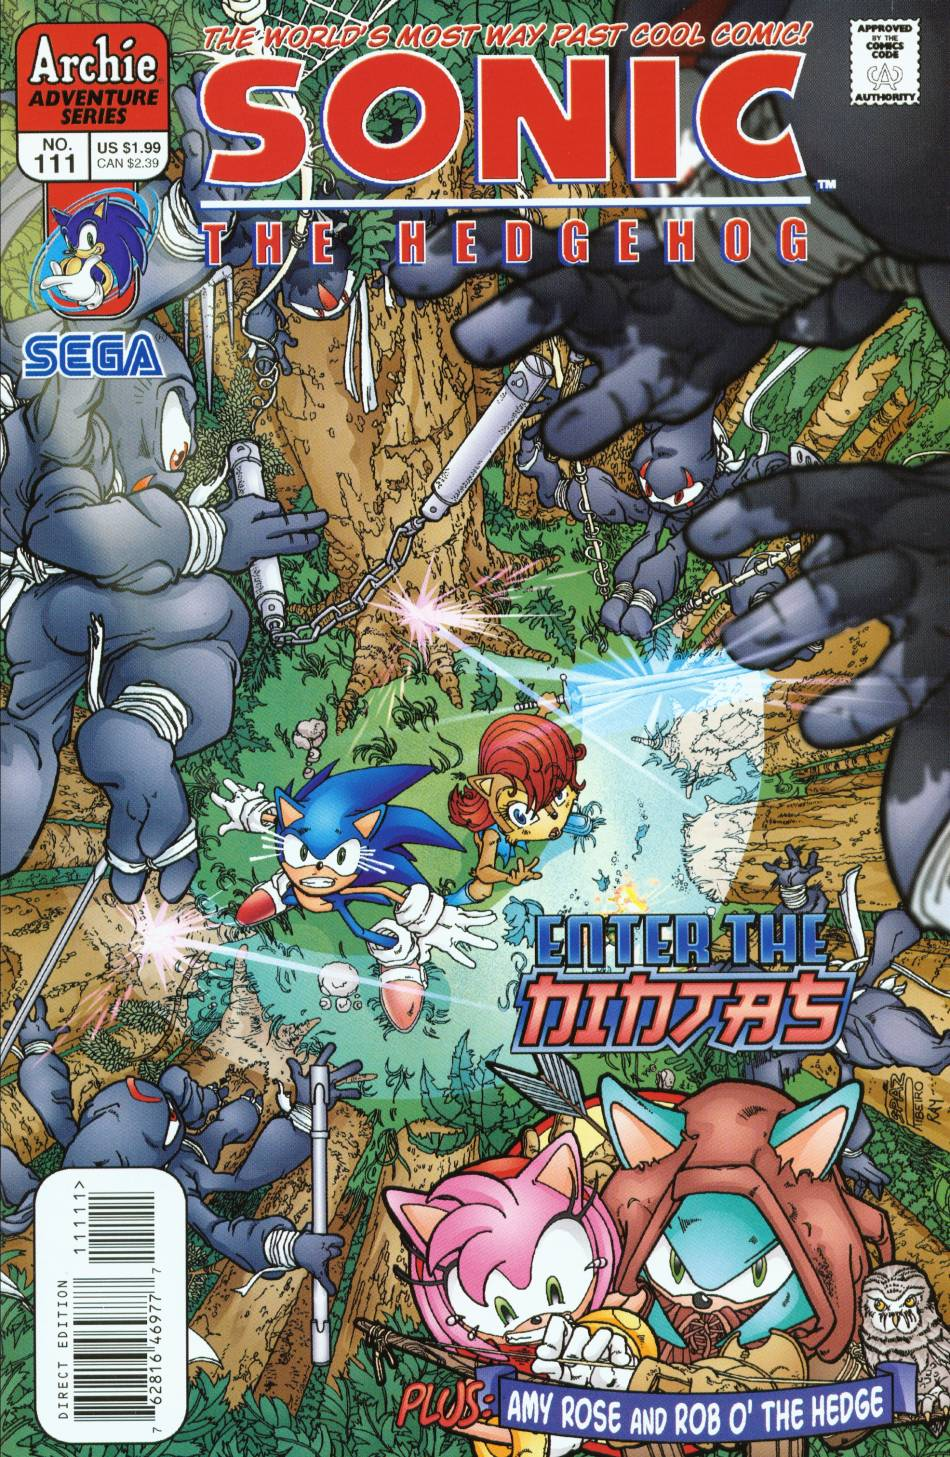 Sonic - Archie Adventure Series August 2002 Comic cover page